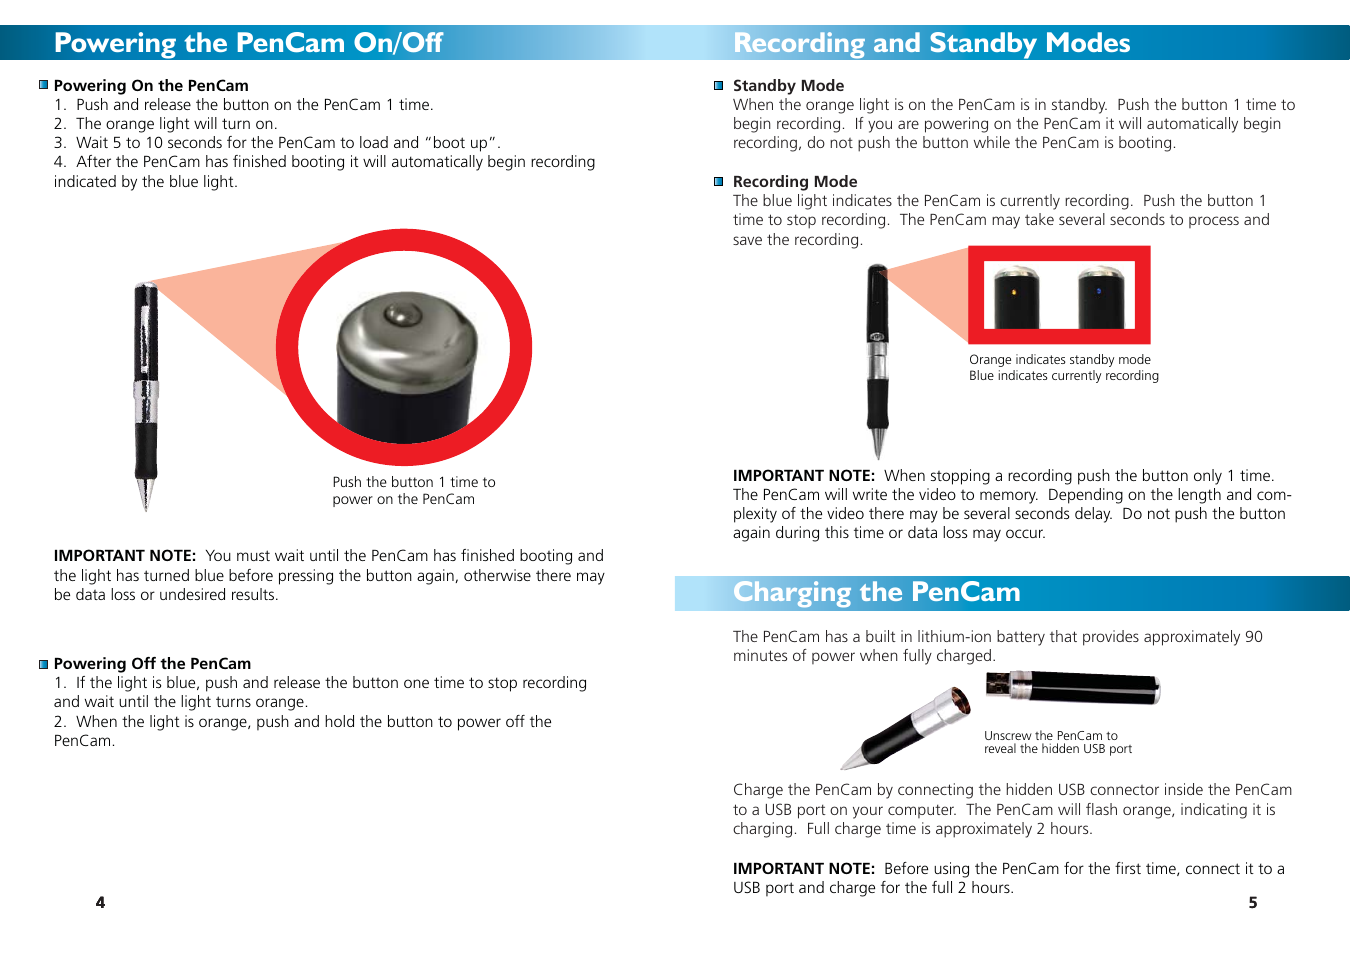 Powering the pencam on/off, Recording and standby modes charging the